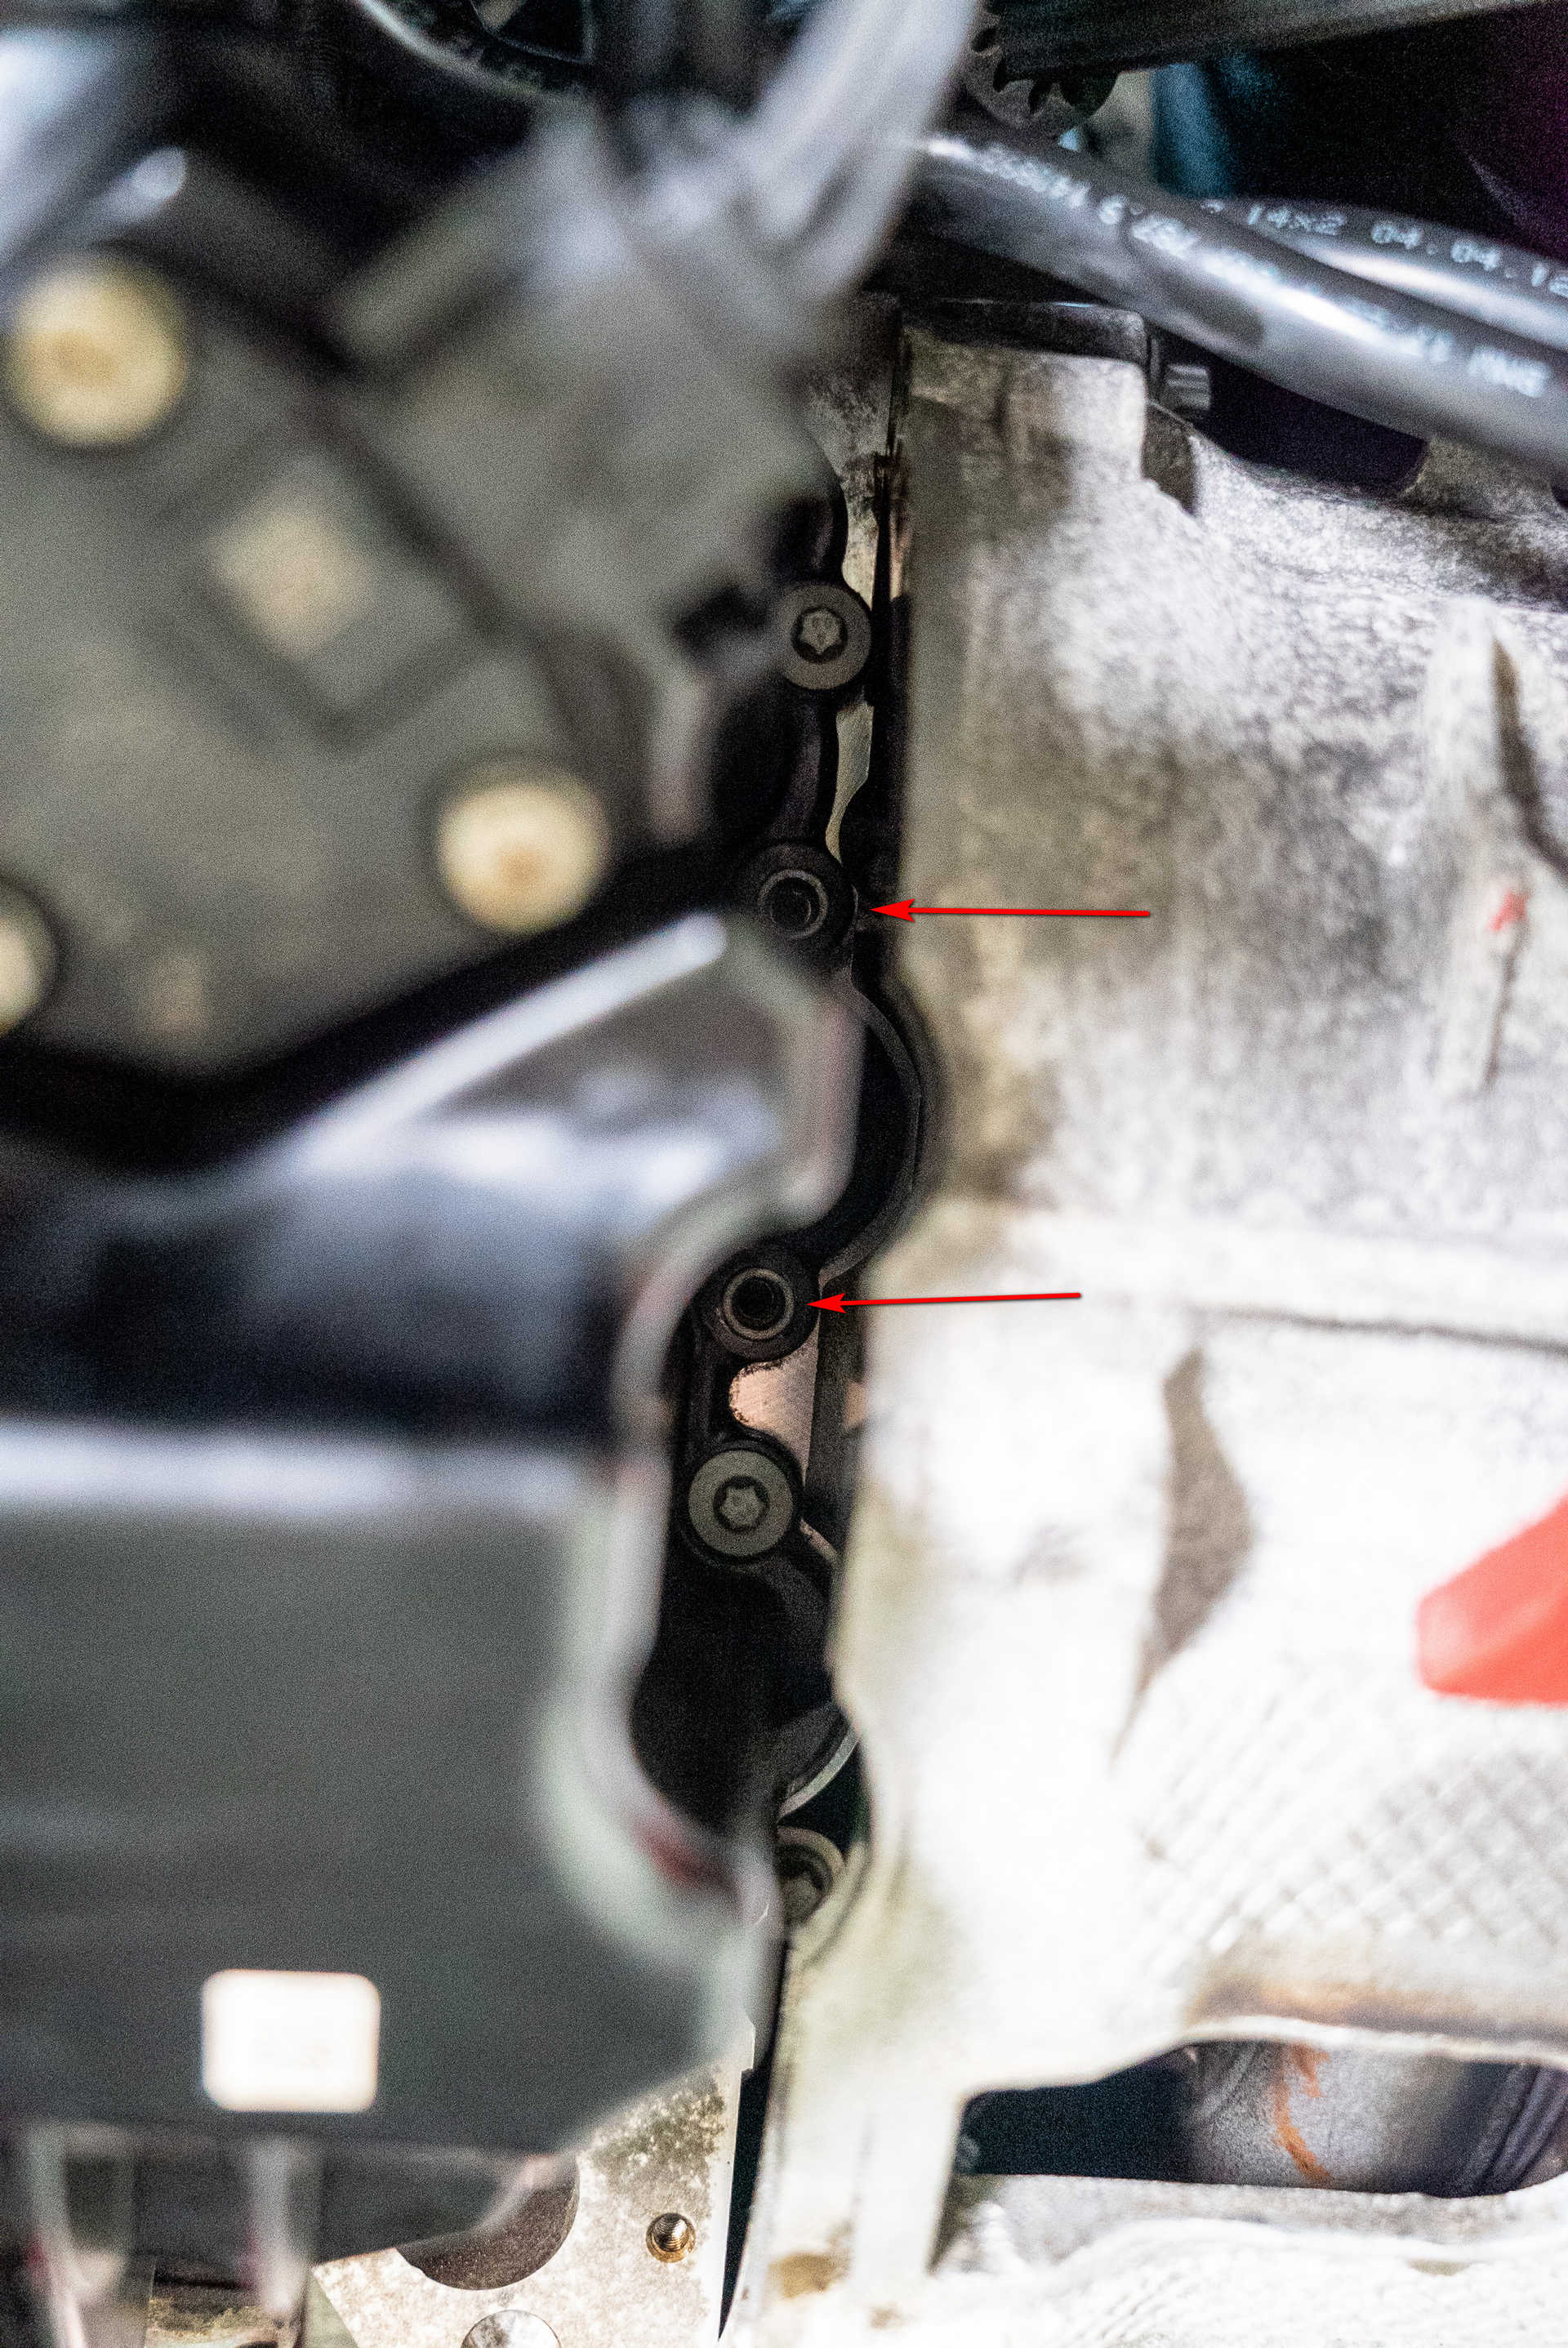 DIY BMW N20 Timing Chain special oil pan bolt locations